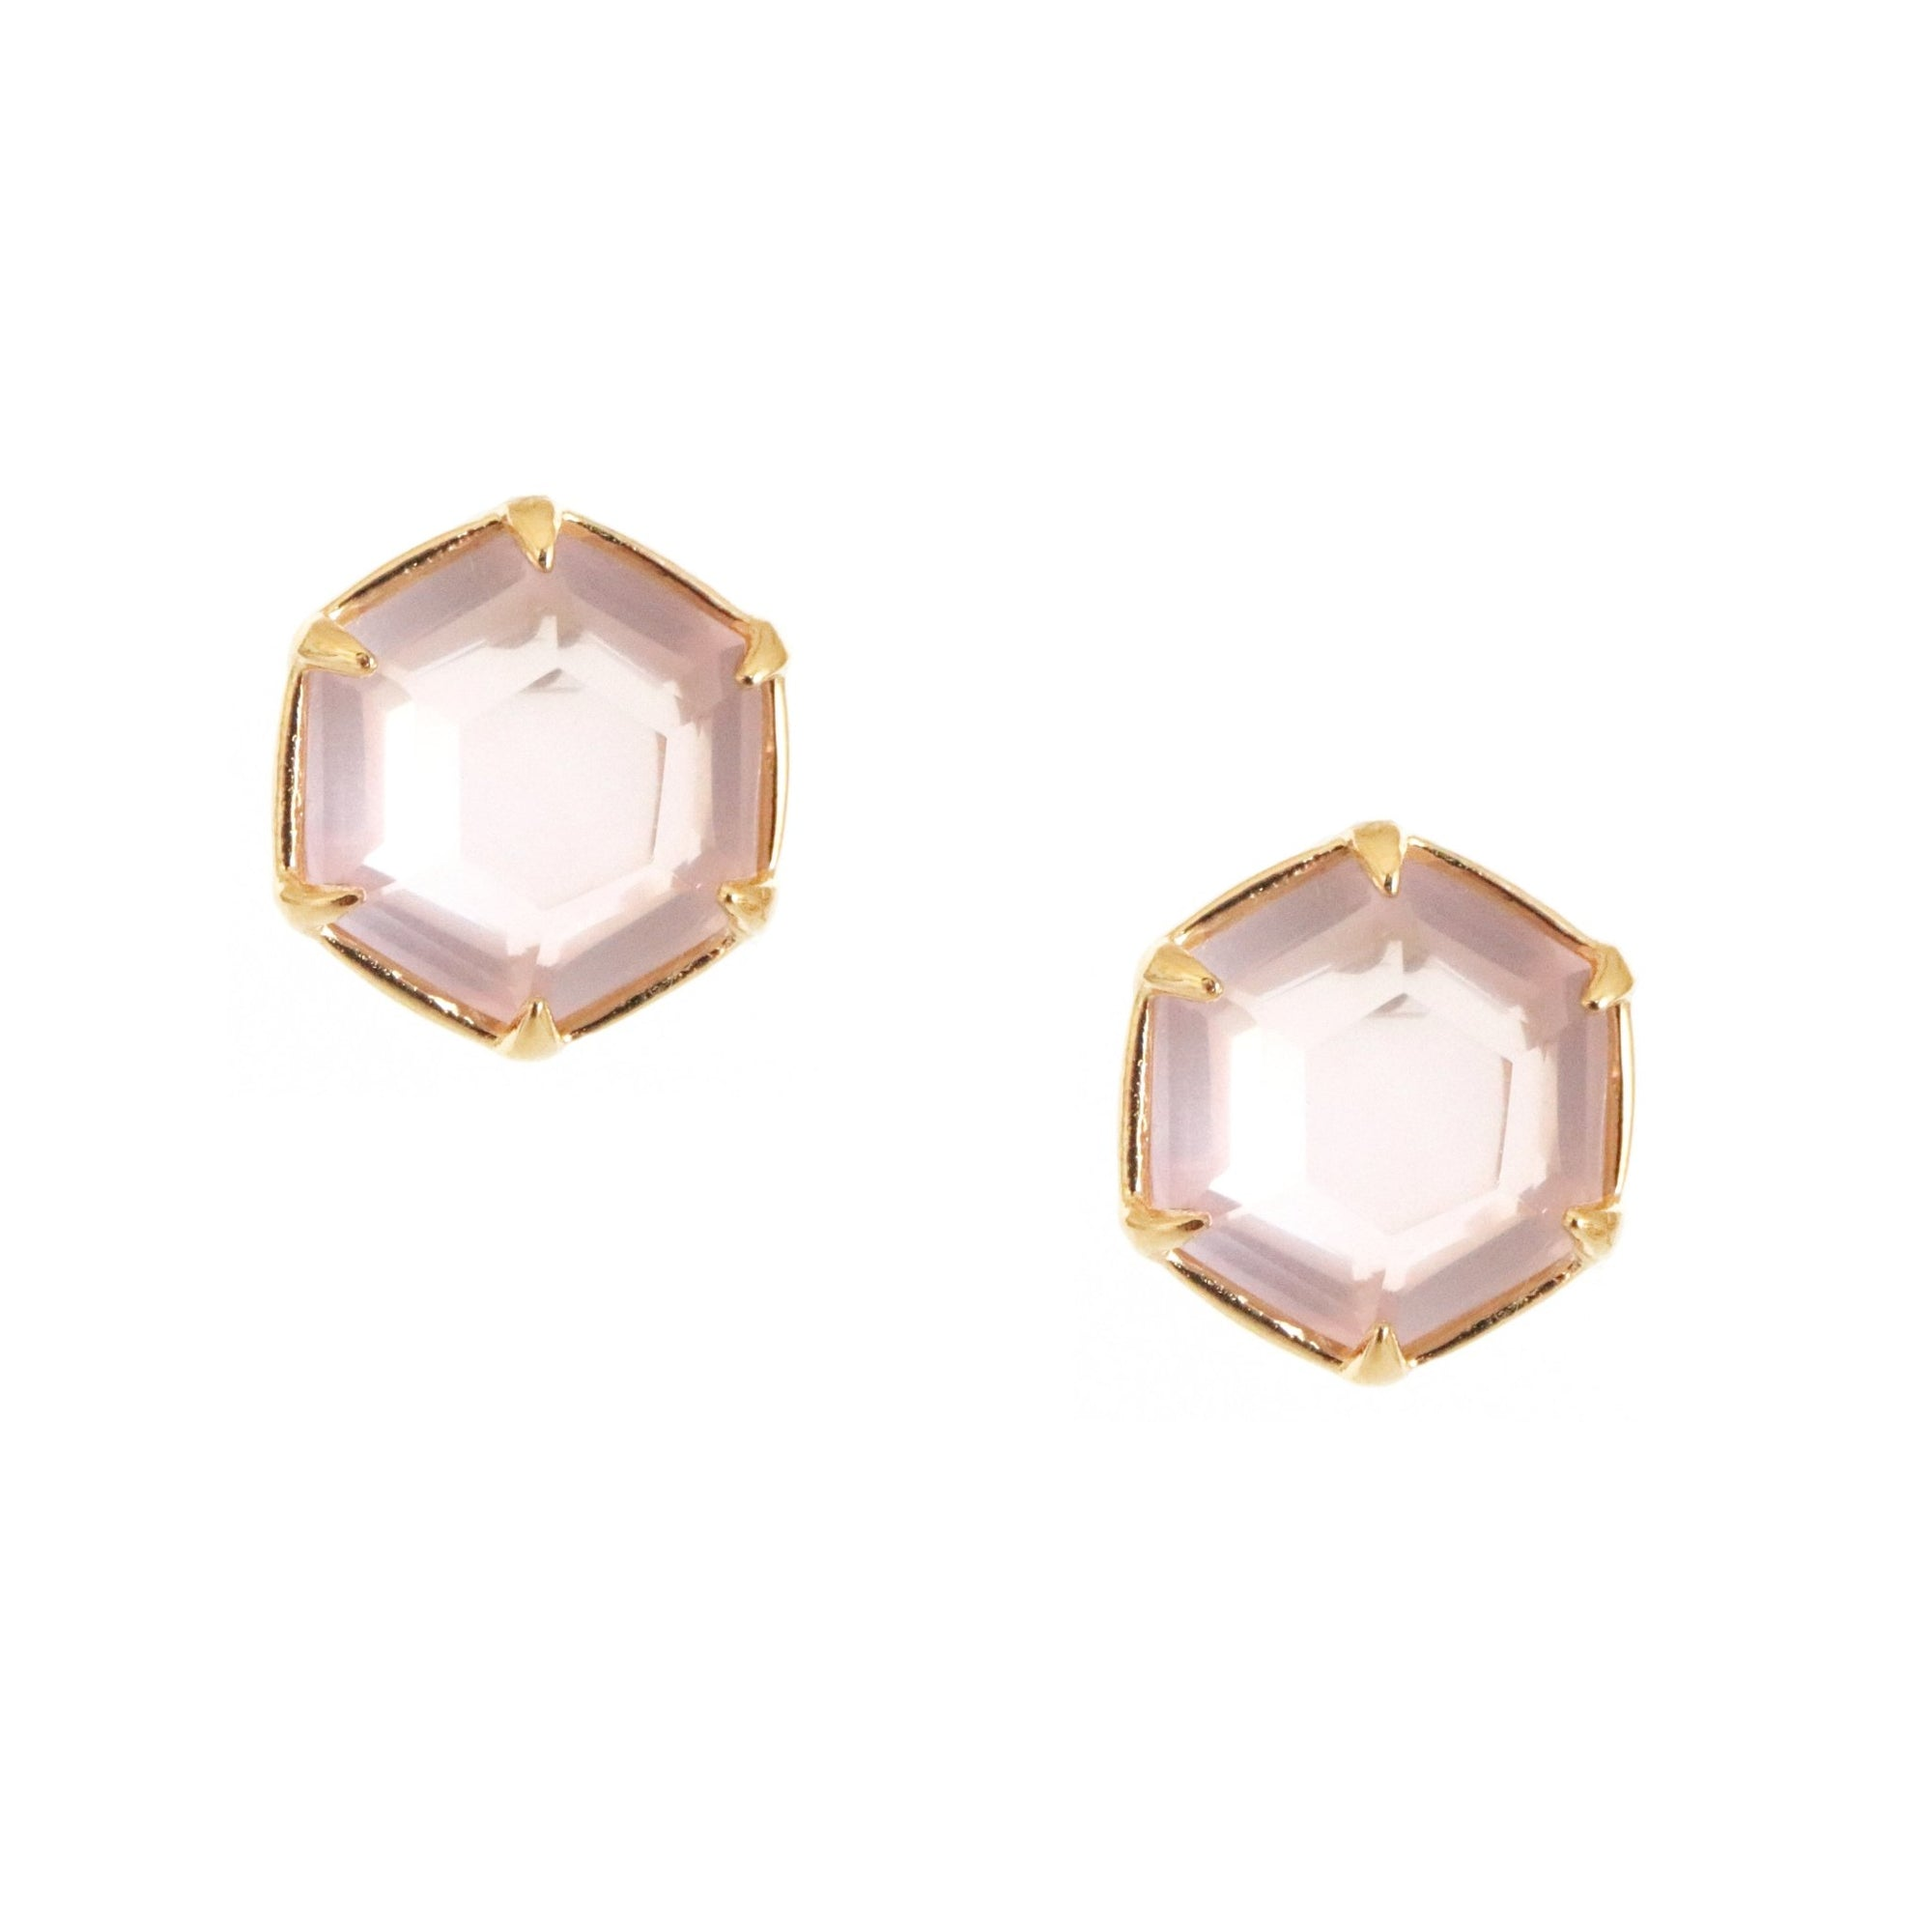 DAY 1 - GRACE HEXAGON STUD EARRINGS - PINK QUARTZ & GOLD - SO PRETTY CARA COTTER